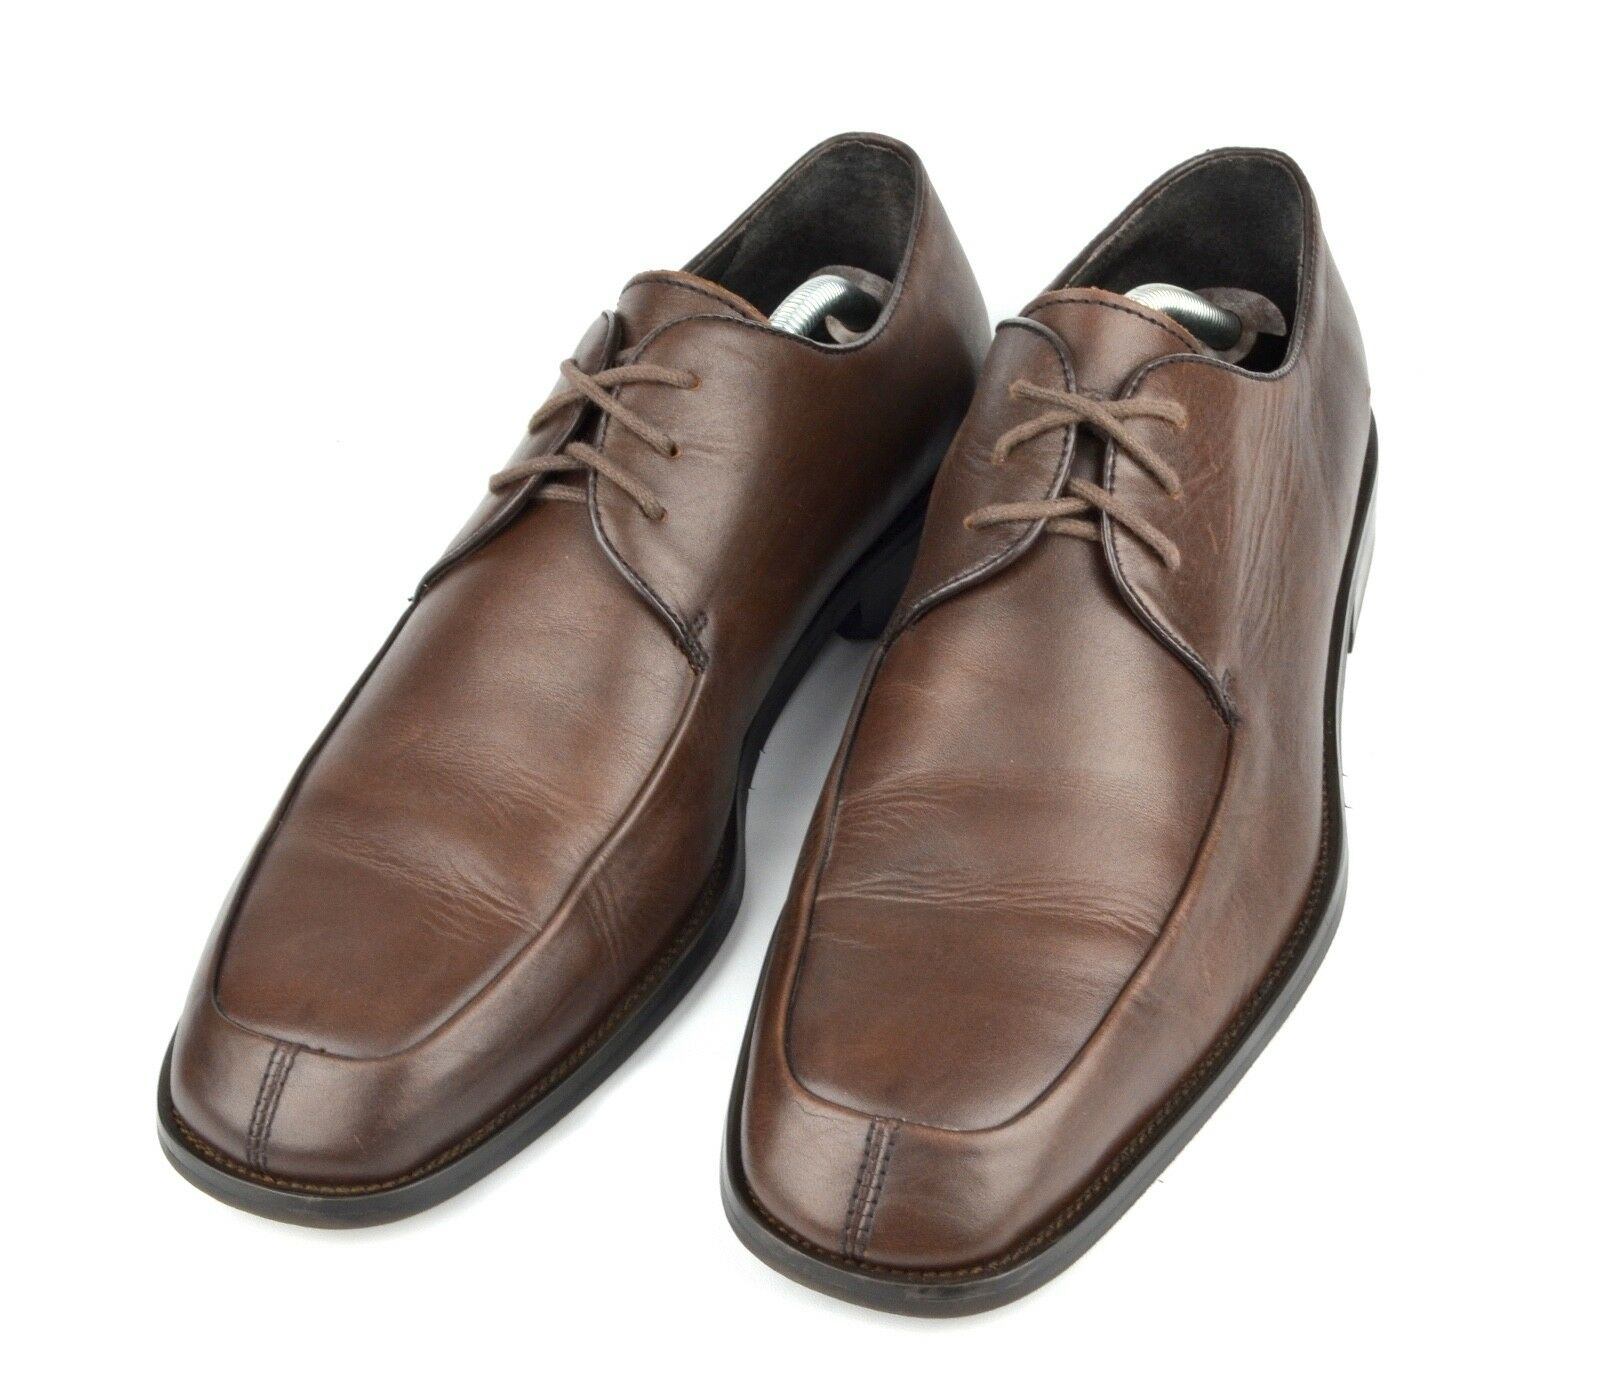 WILKE RODRIGUEZ Men's Oxford Split-Apron Toe Sz. 9.5 Brown Leather Dress shoes